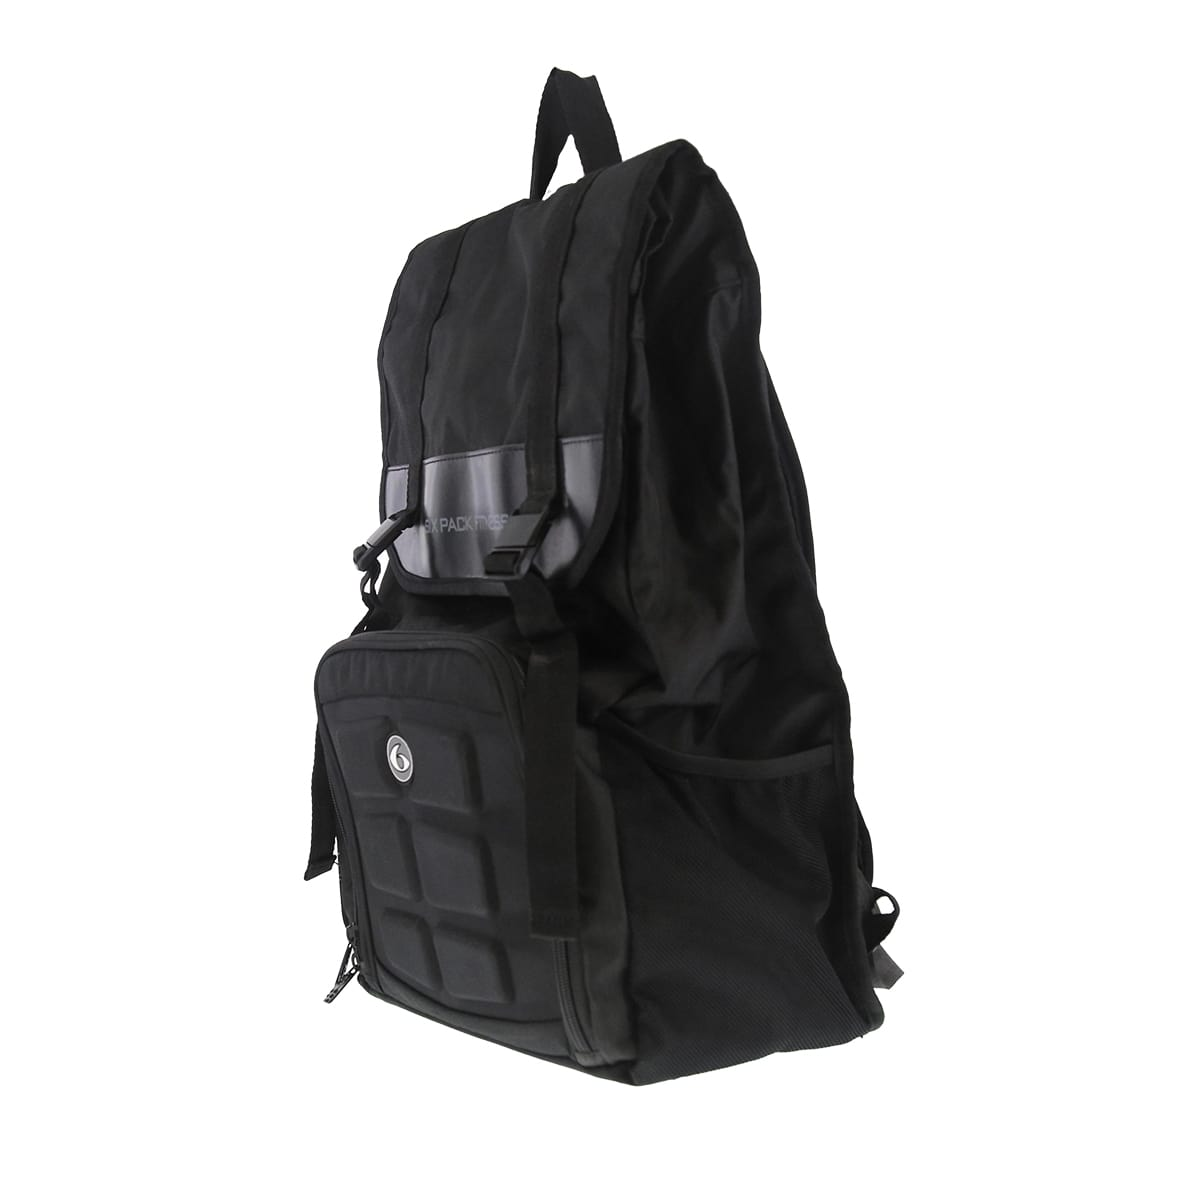 Commuter Backpack Meal Prep Management System 300 Stealth (Black/Black)